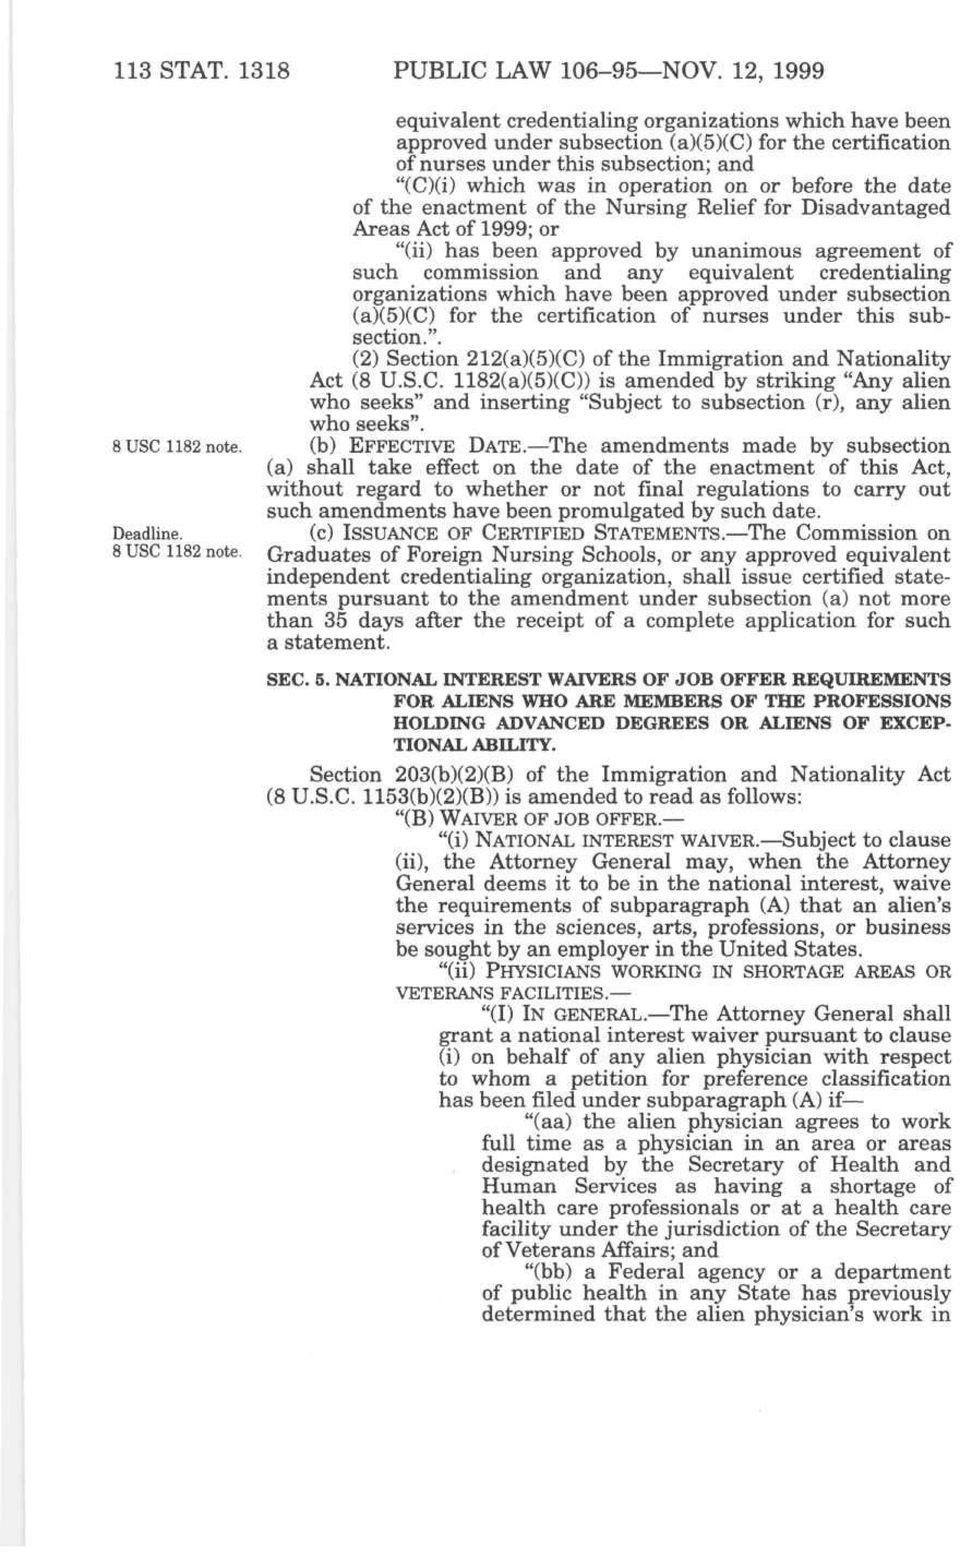 "before the date of the enactment of the Nursing Rehef for Disadvantaged Areas Act of 1999; or ""(ii) has been approved by unanimous agreement of such commission and any equivalent credentialing"